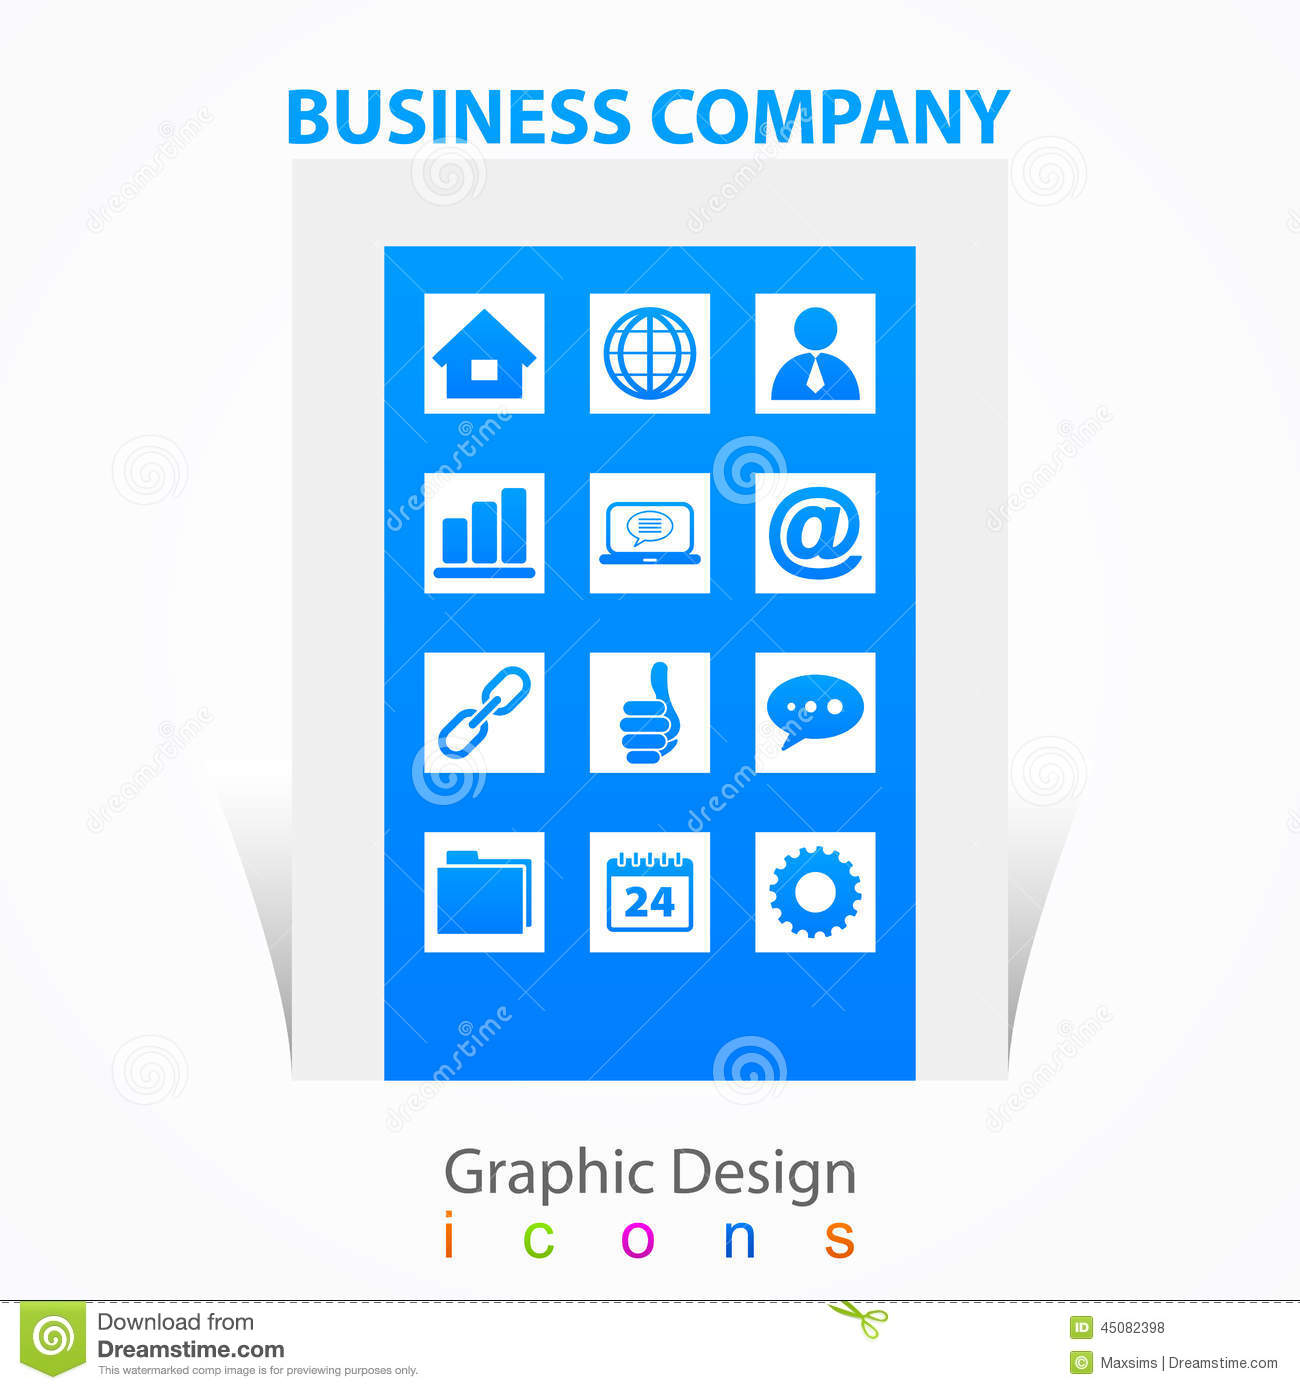 Graphic design firms ppt web design web development for Service design firms